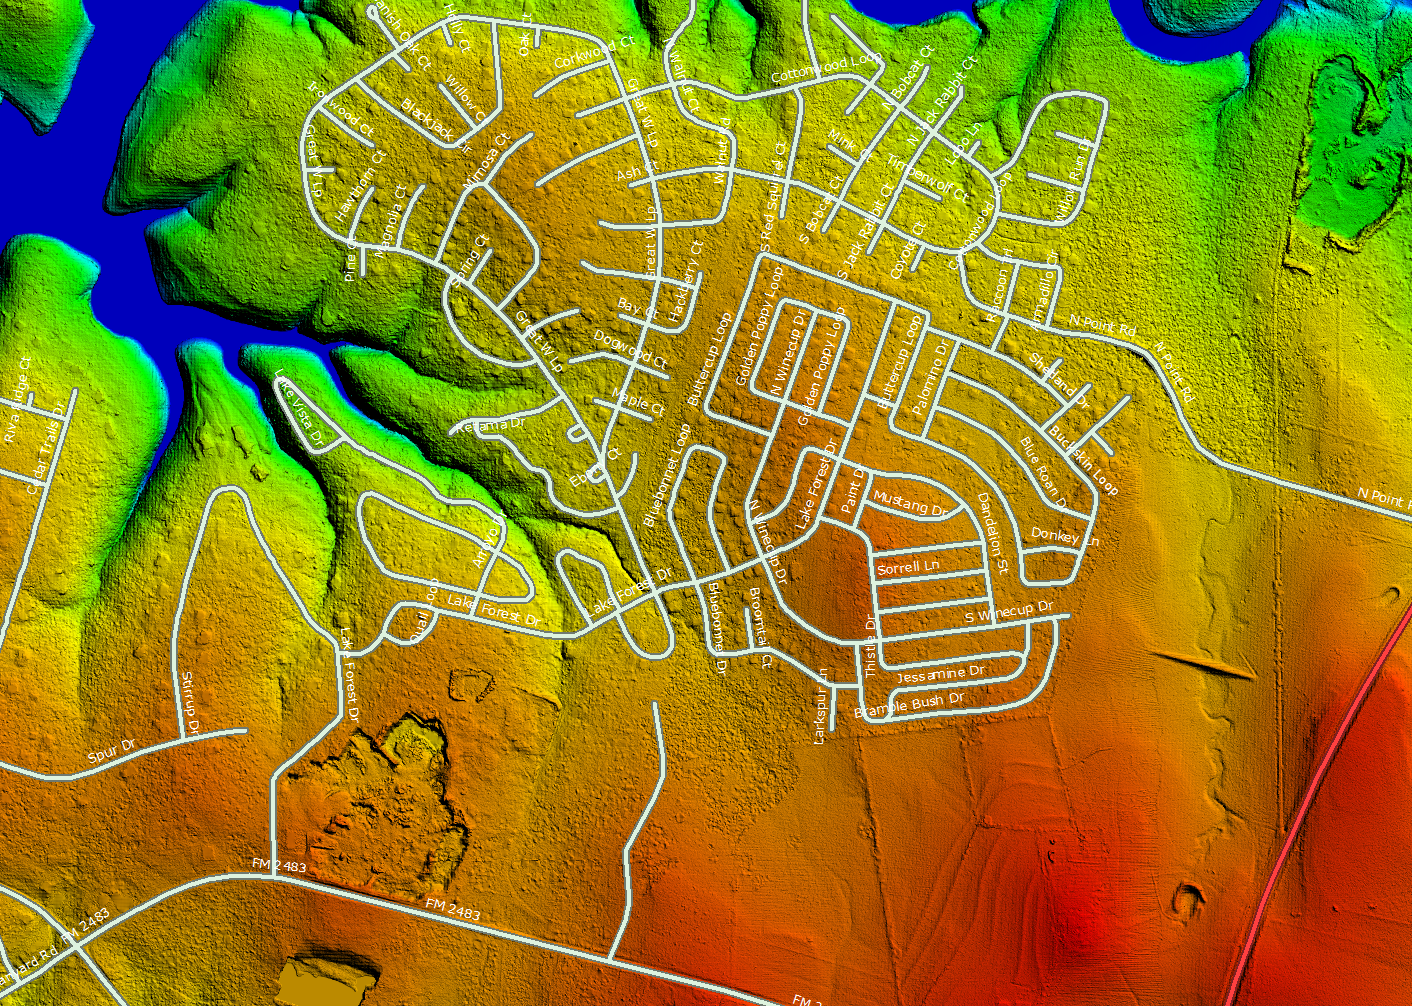 LiDAR Surface Generation